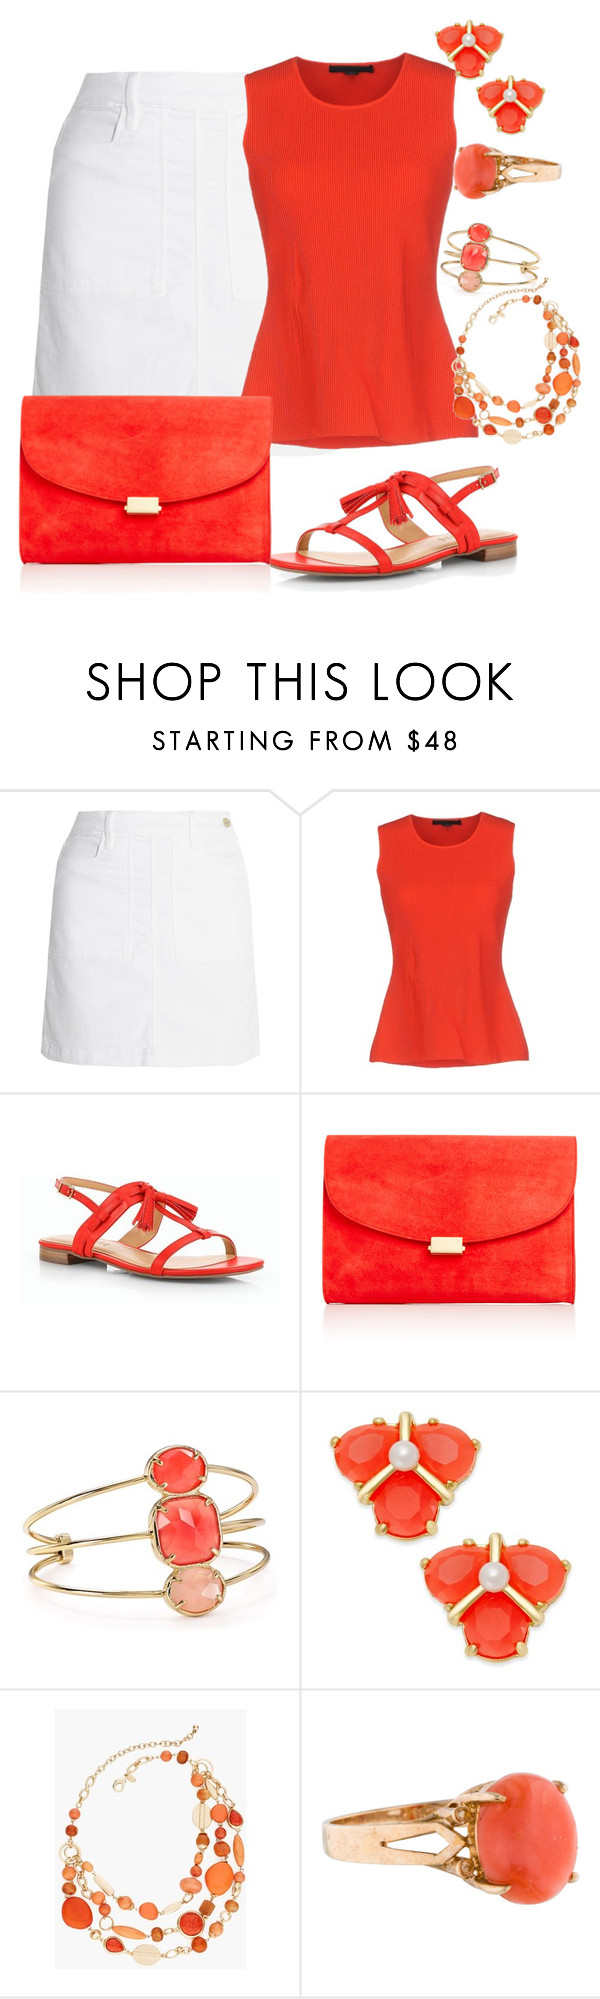 """Bridesmaids Lunch"" by sommer-reign ❤ liked on Polyvore featuring Frame Denim, Alexander Wang, Talbots, Mansur Gavriel, Kate Spade and Chico's"